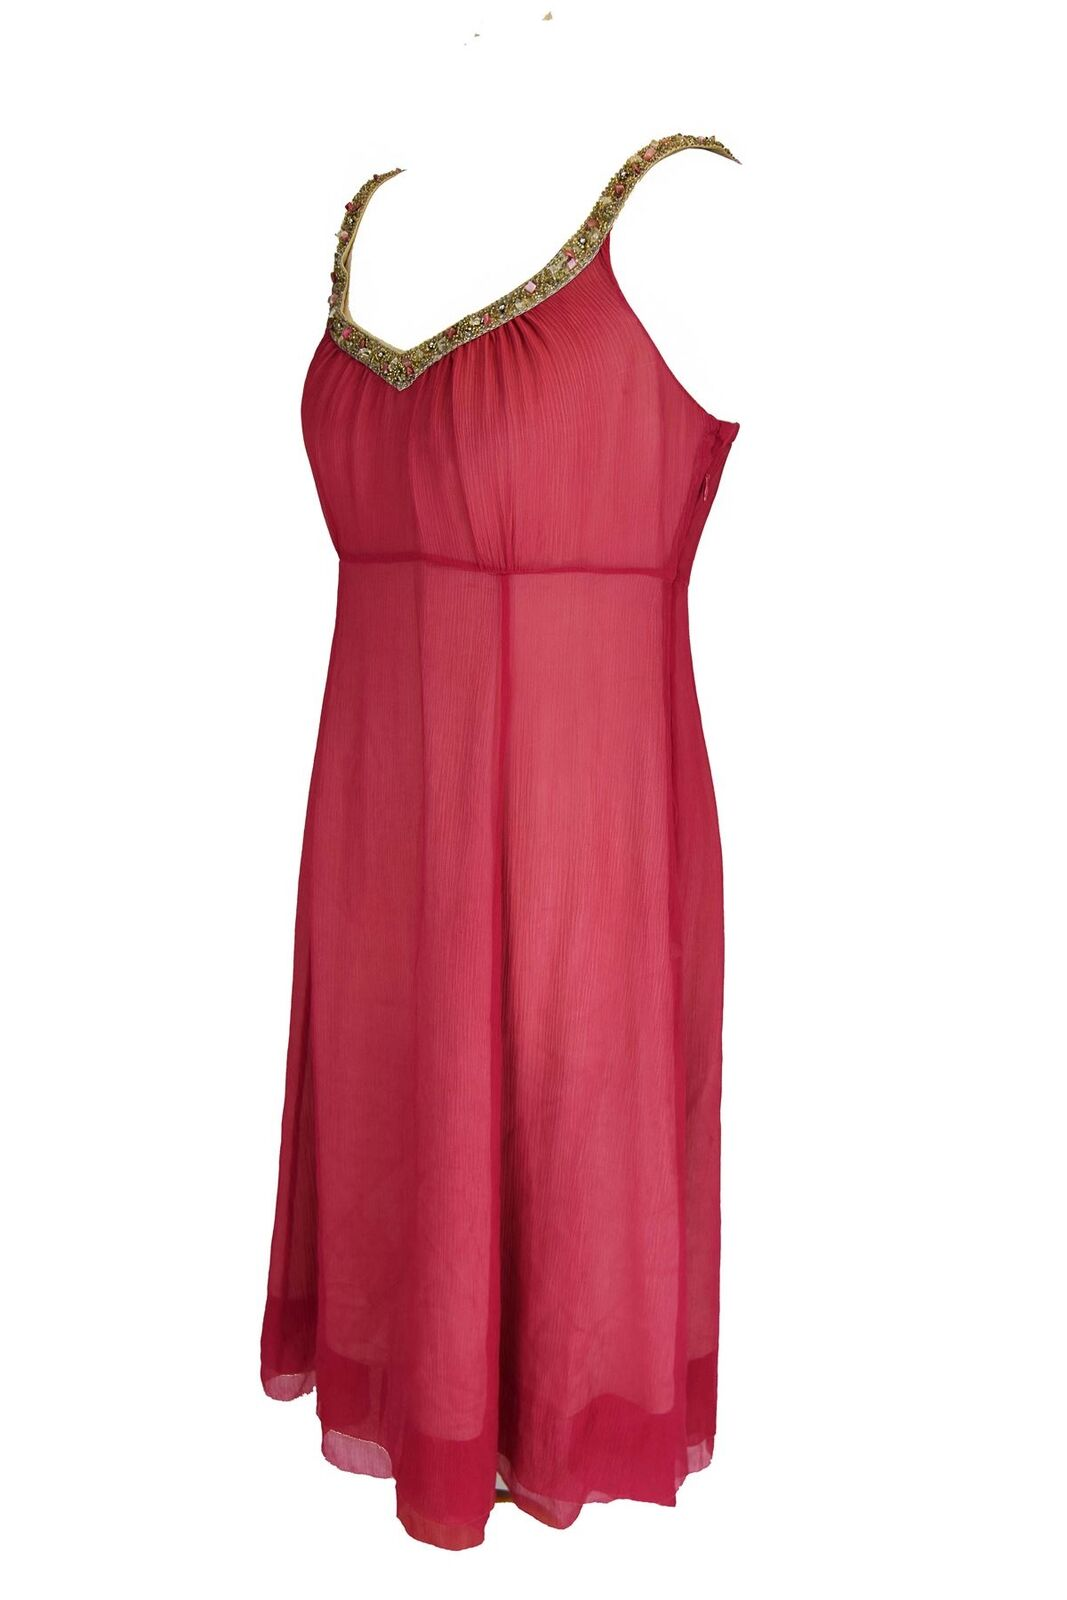 LK BENNETT Pink 100% 100% 100% Silk Long Dress, US 6 fd6e9b